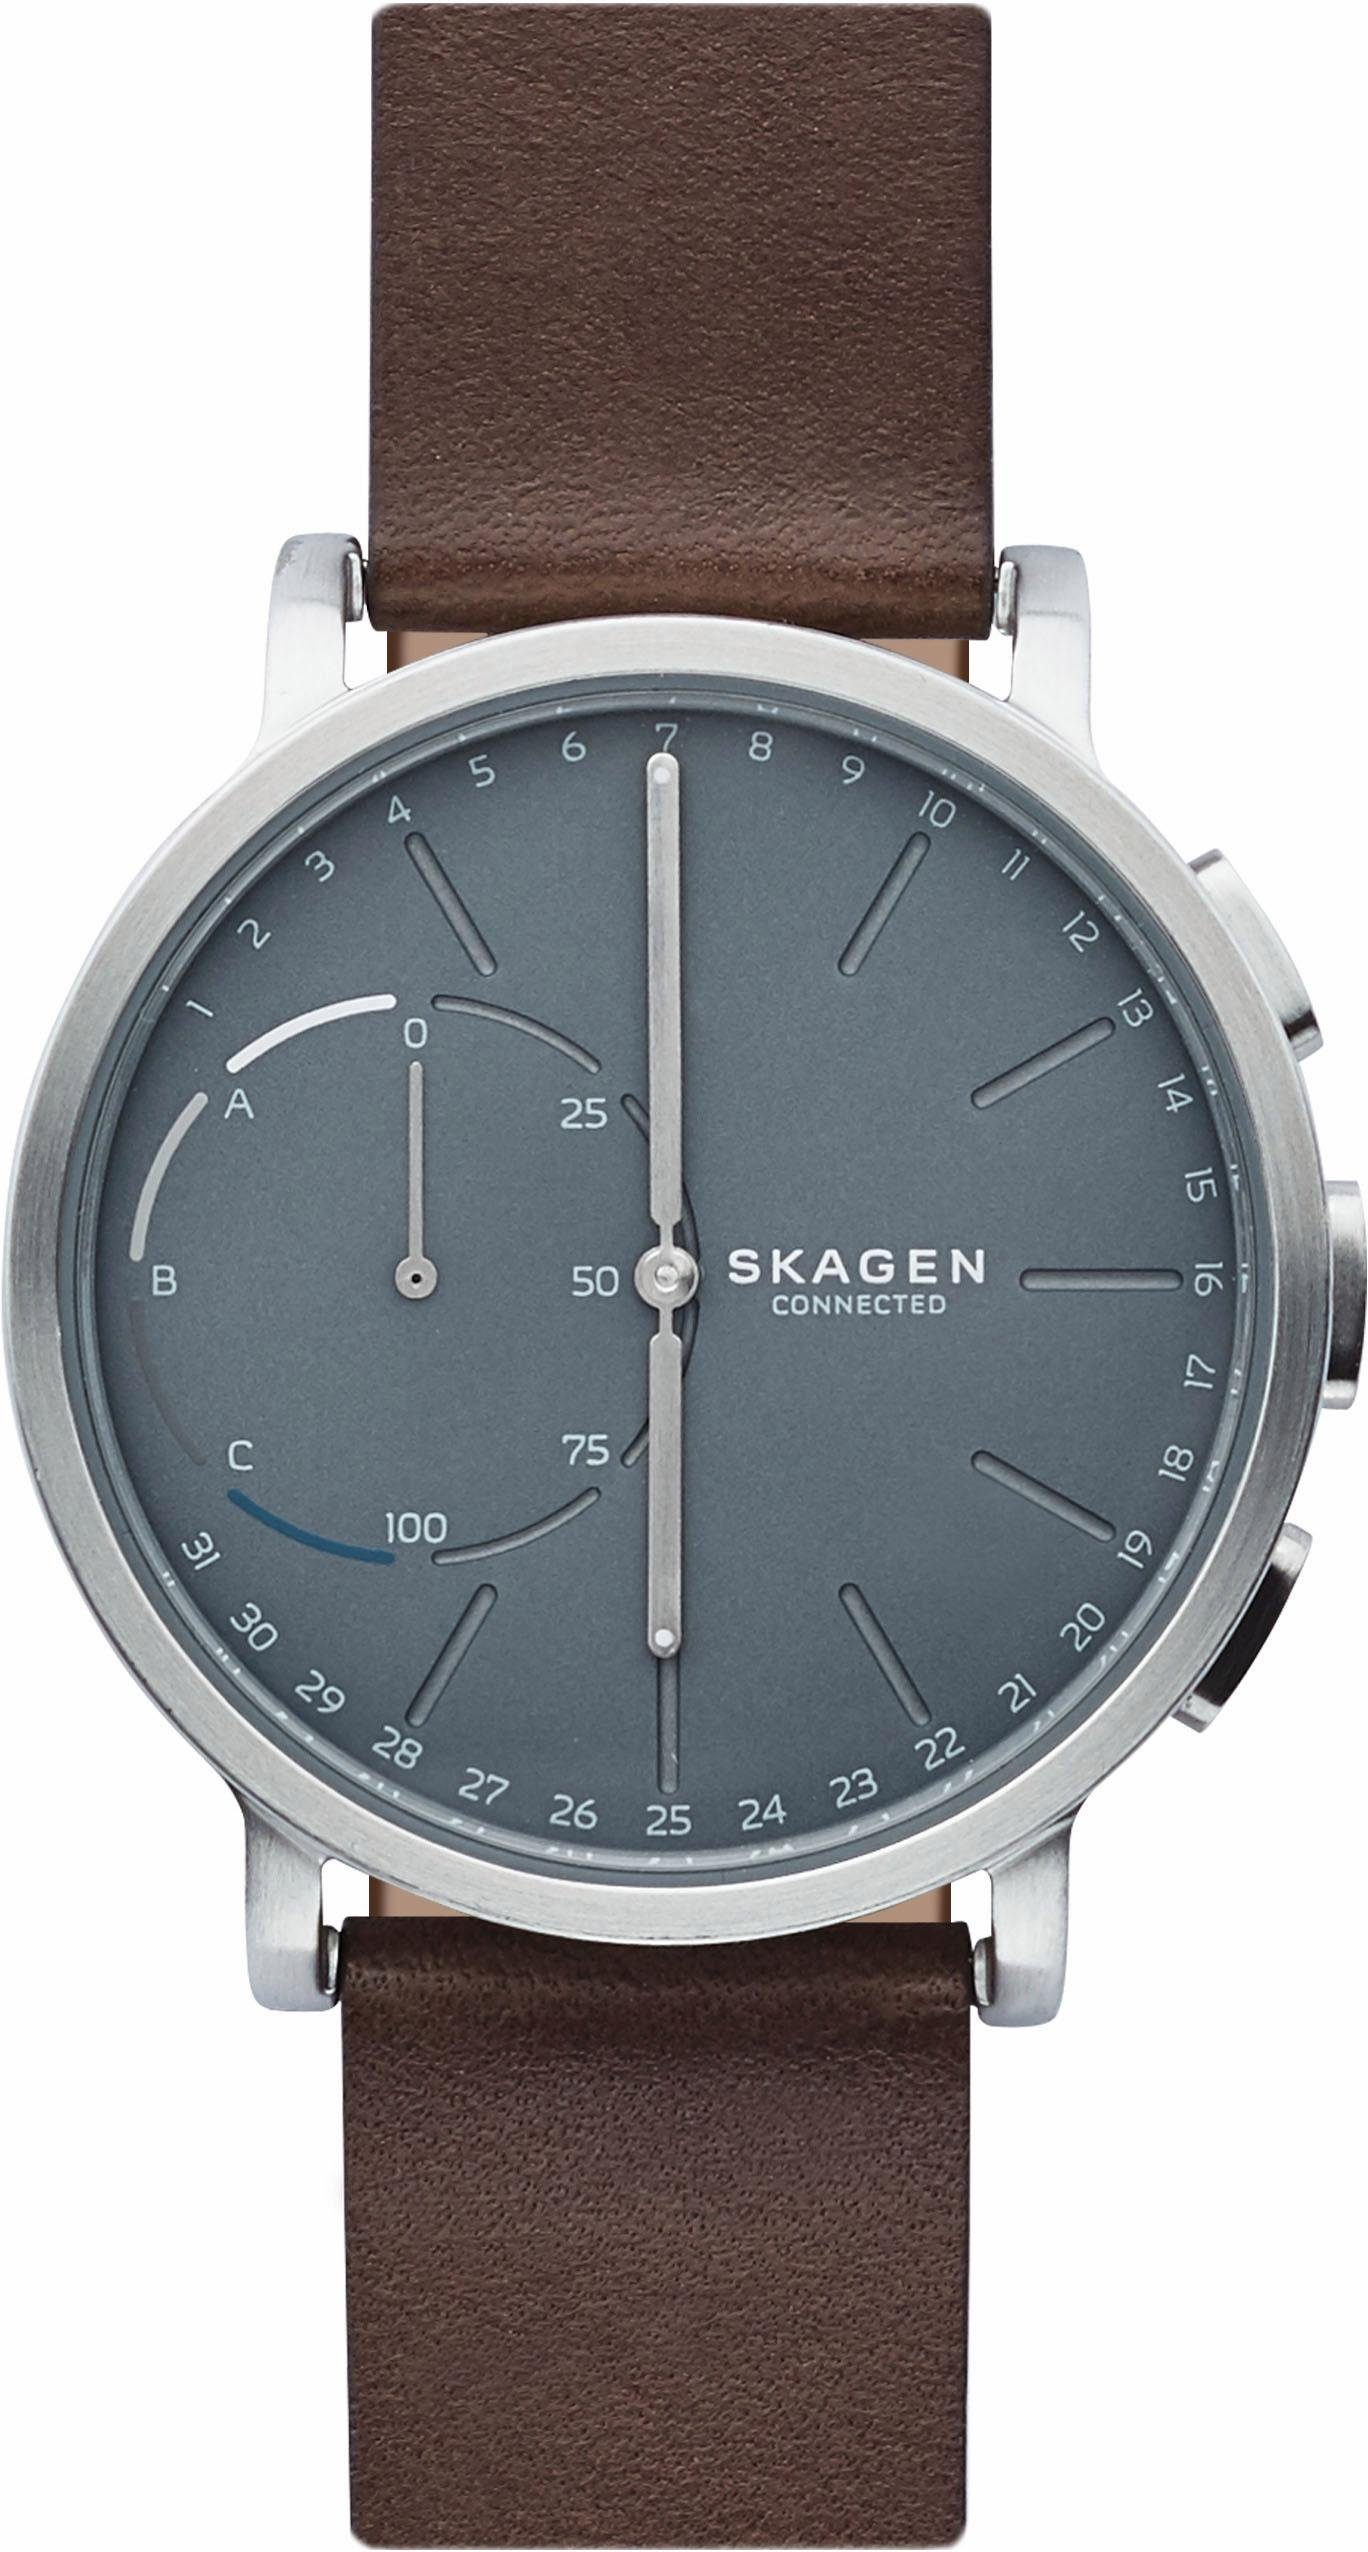 SKAGEN CONNECTED HAGEN CONNECTED, SKT1110 Smartwatch (Android Wear)